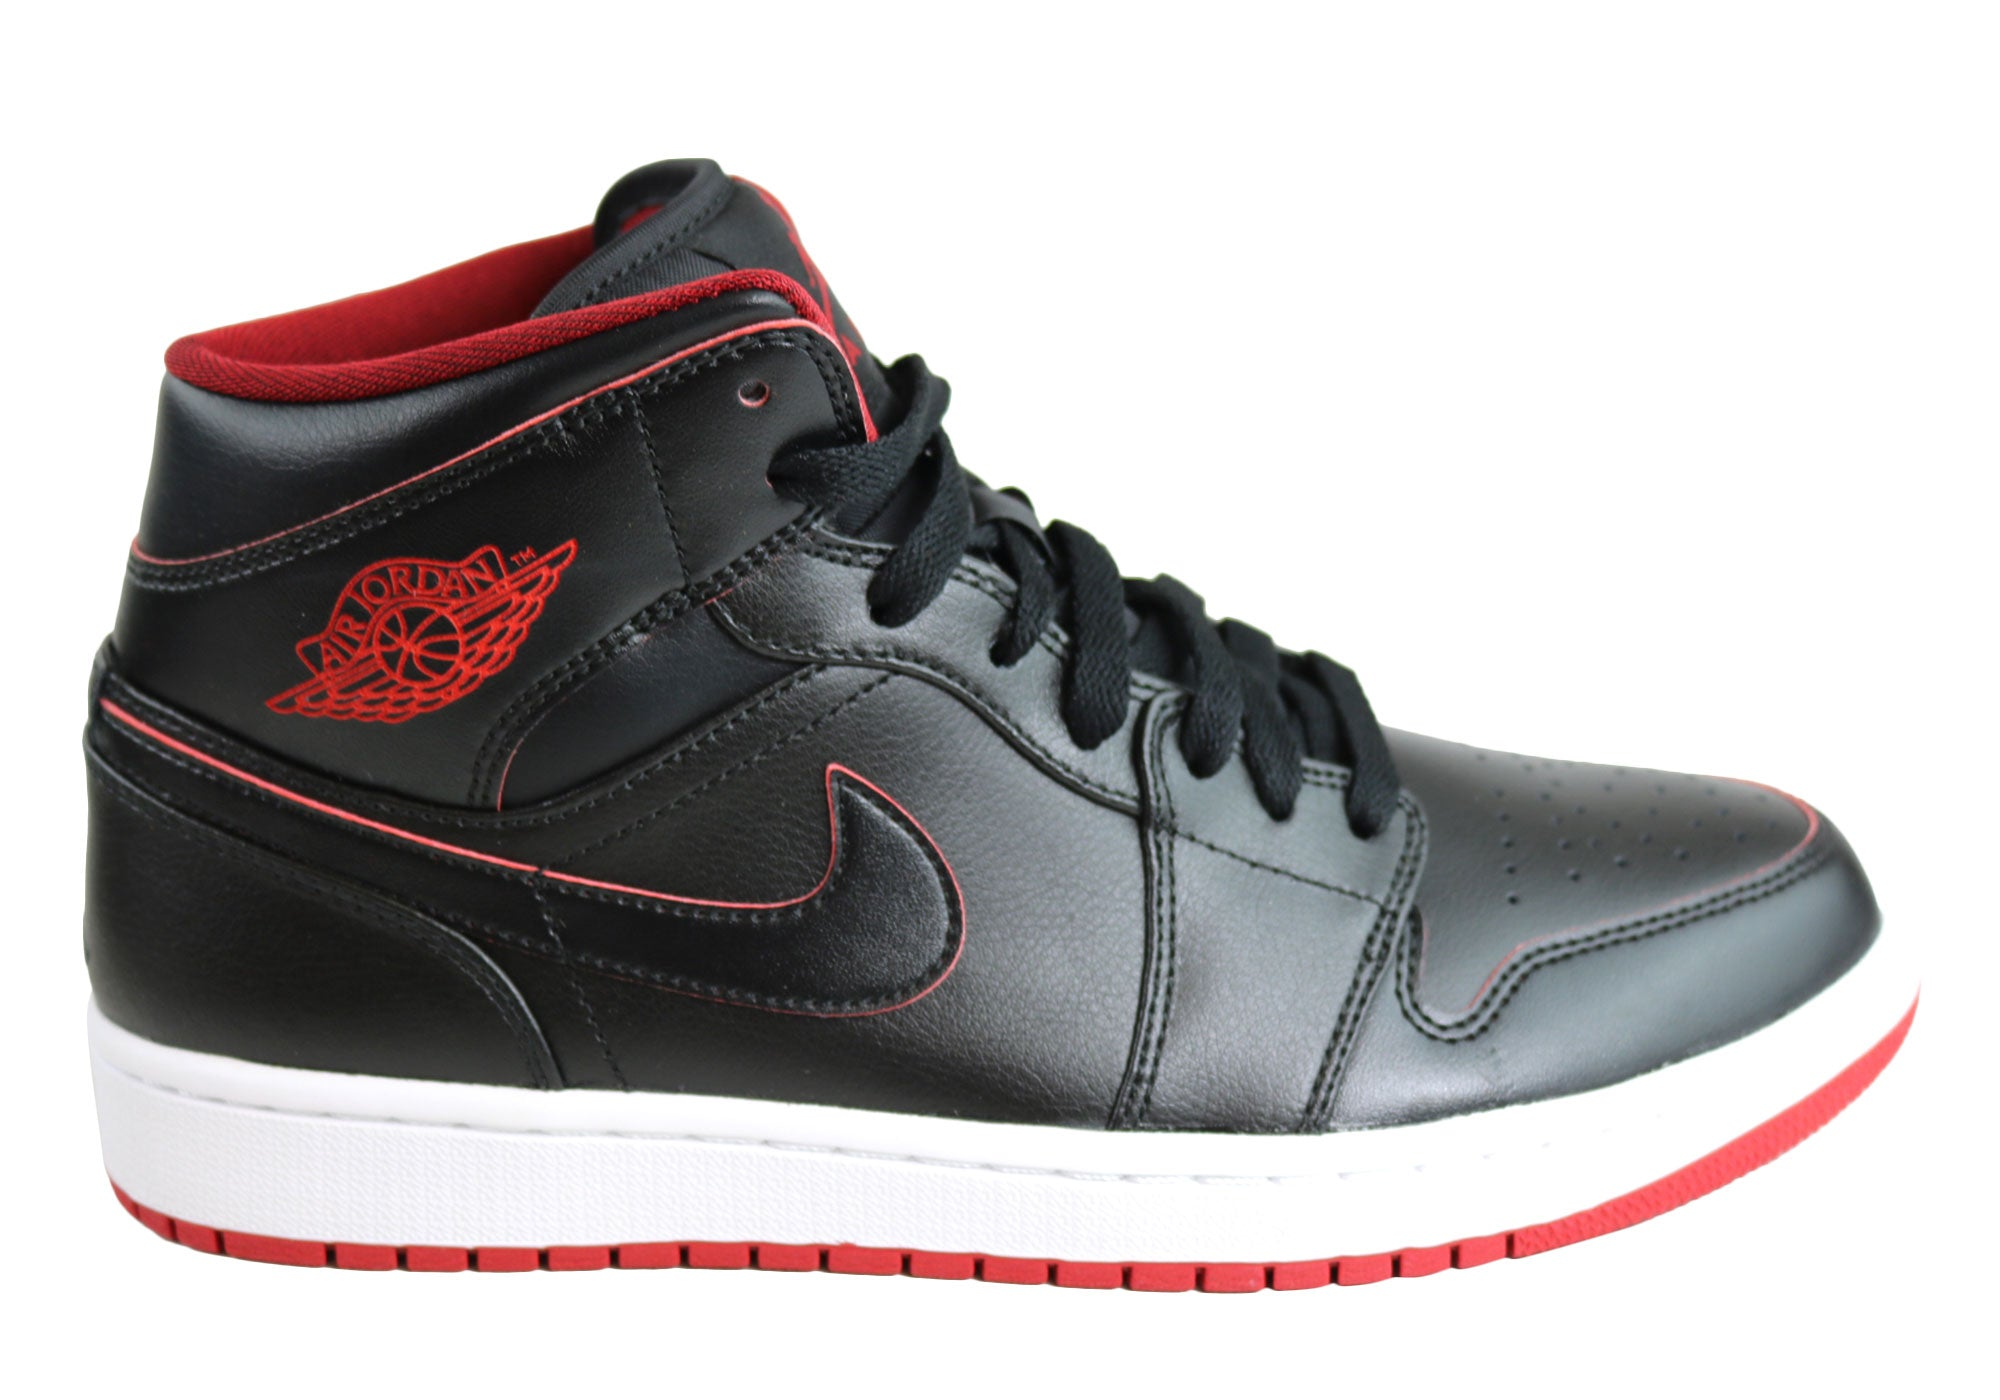 finest selection 59fce 97a1d Home Nike Air Jordan 1 Mid Hi Tops Basketball Shoes. Black White Red  Wolf  Grey ...